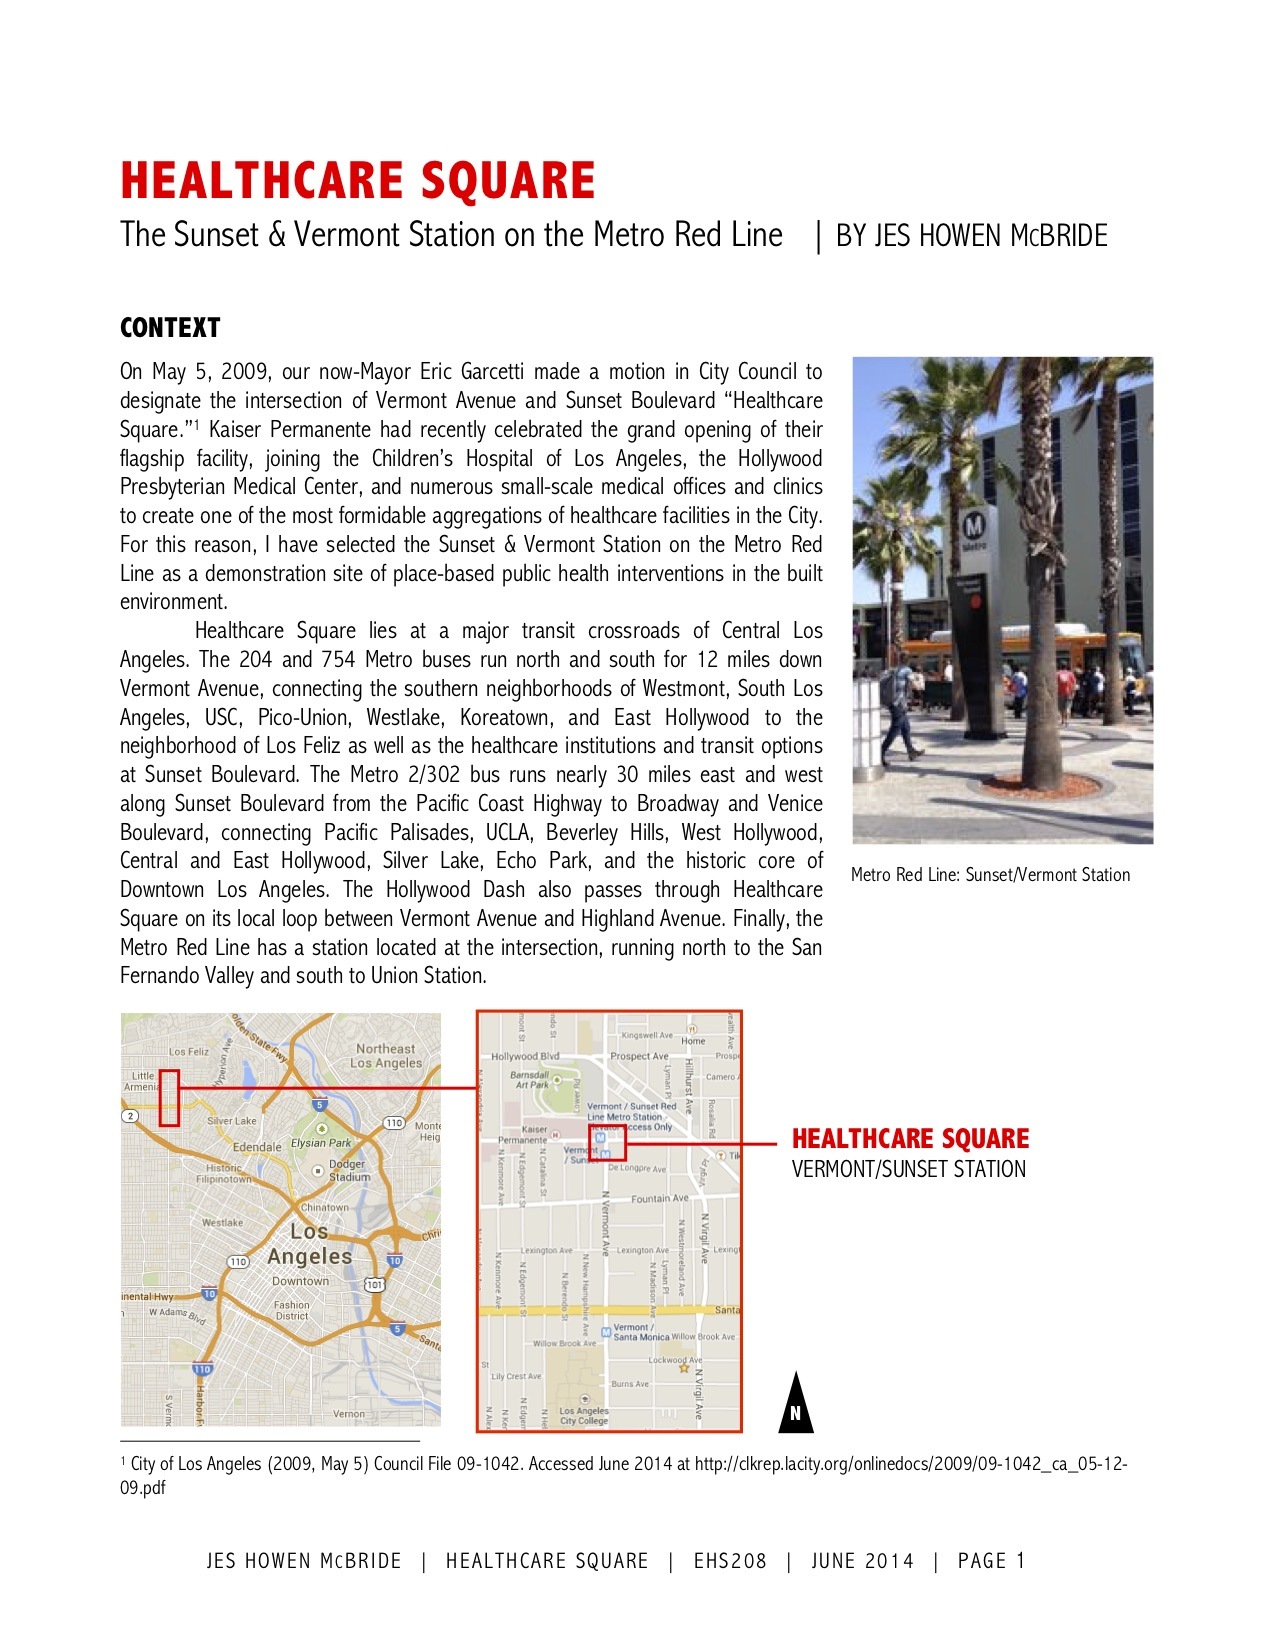 Placemaking + Public Health Study  for a UCLA graduate-level course for Public Health and the Built Environment; Microsoft Word, InDesign, Photography, Field Research